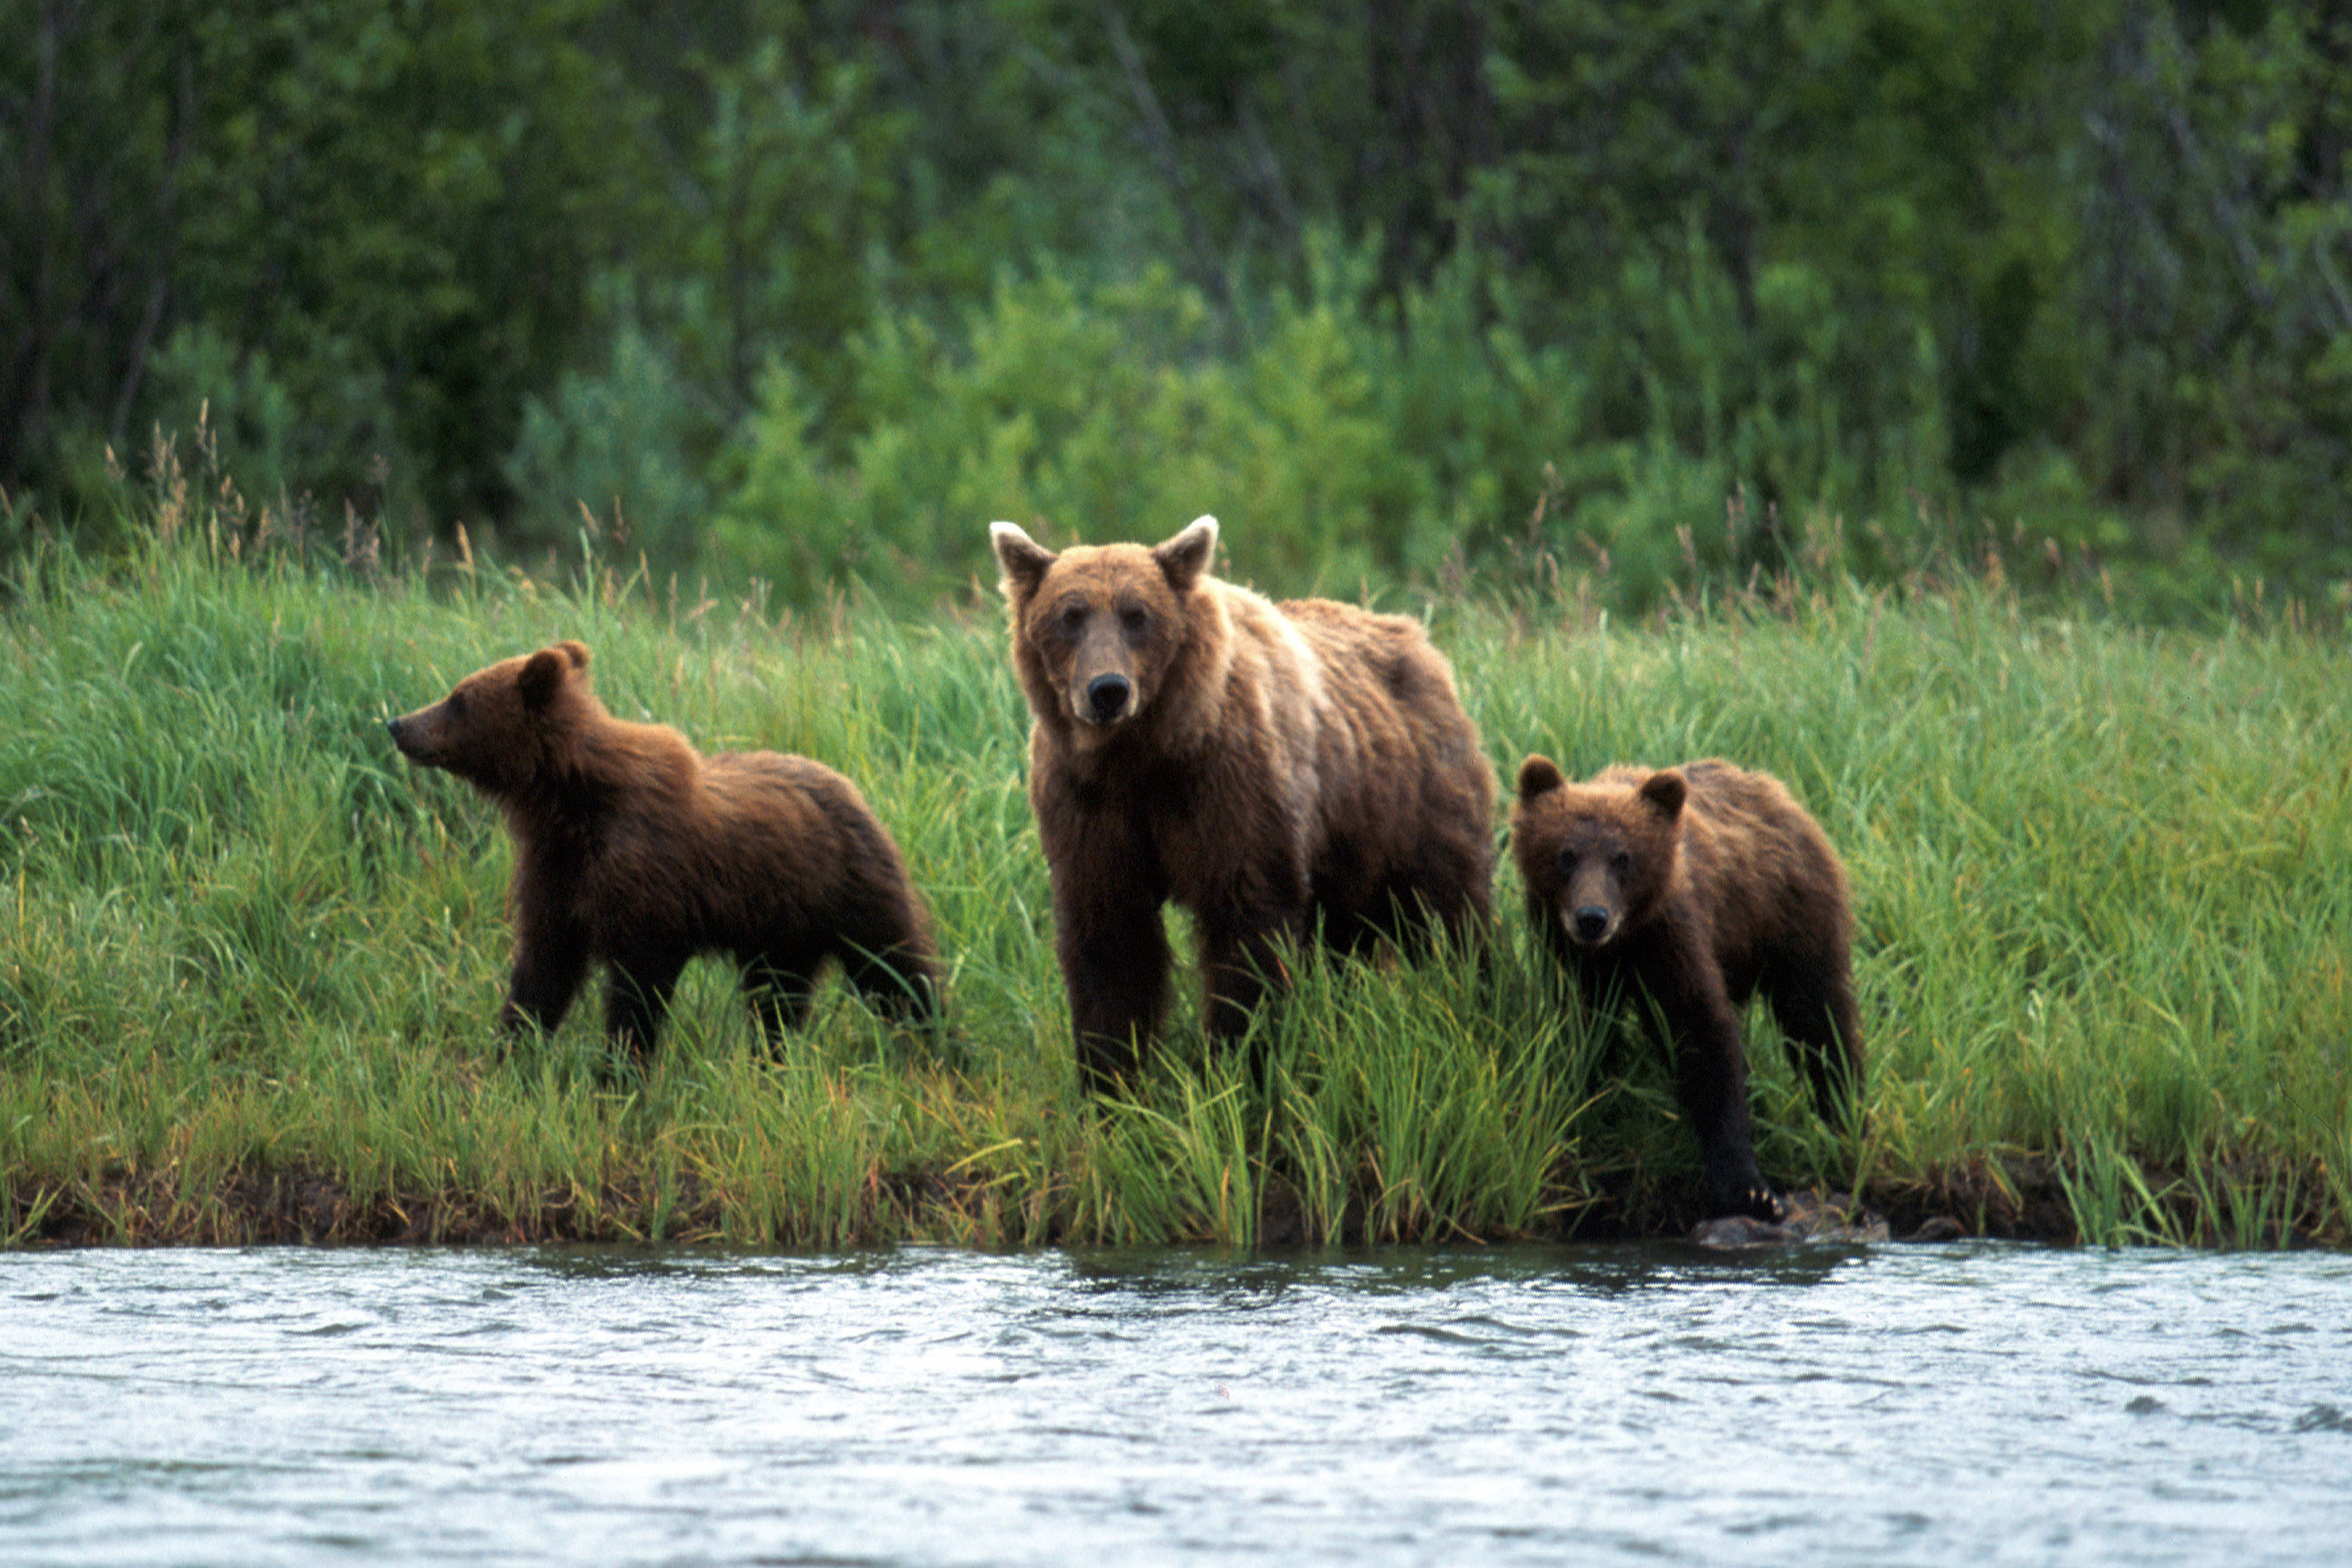 Sow with her cubs travelling along the River